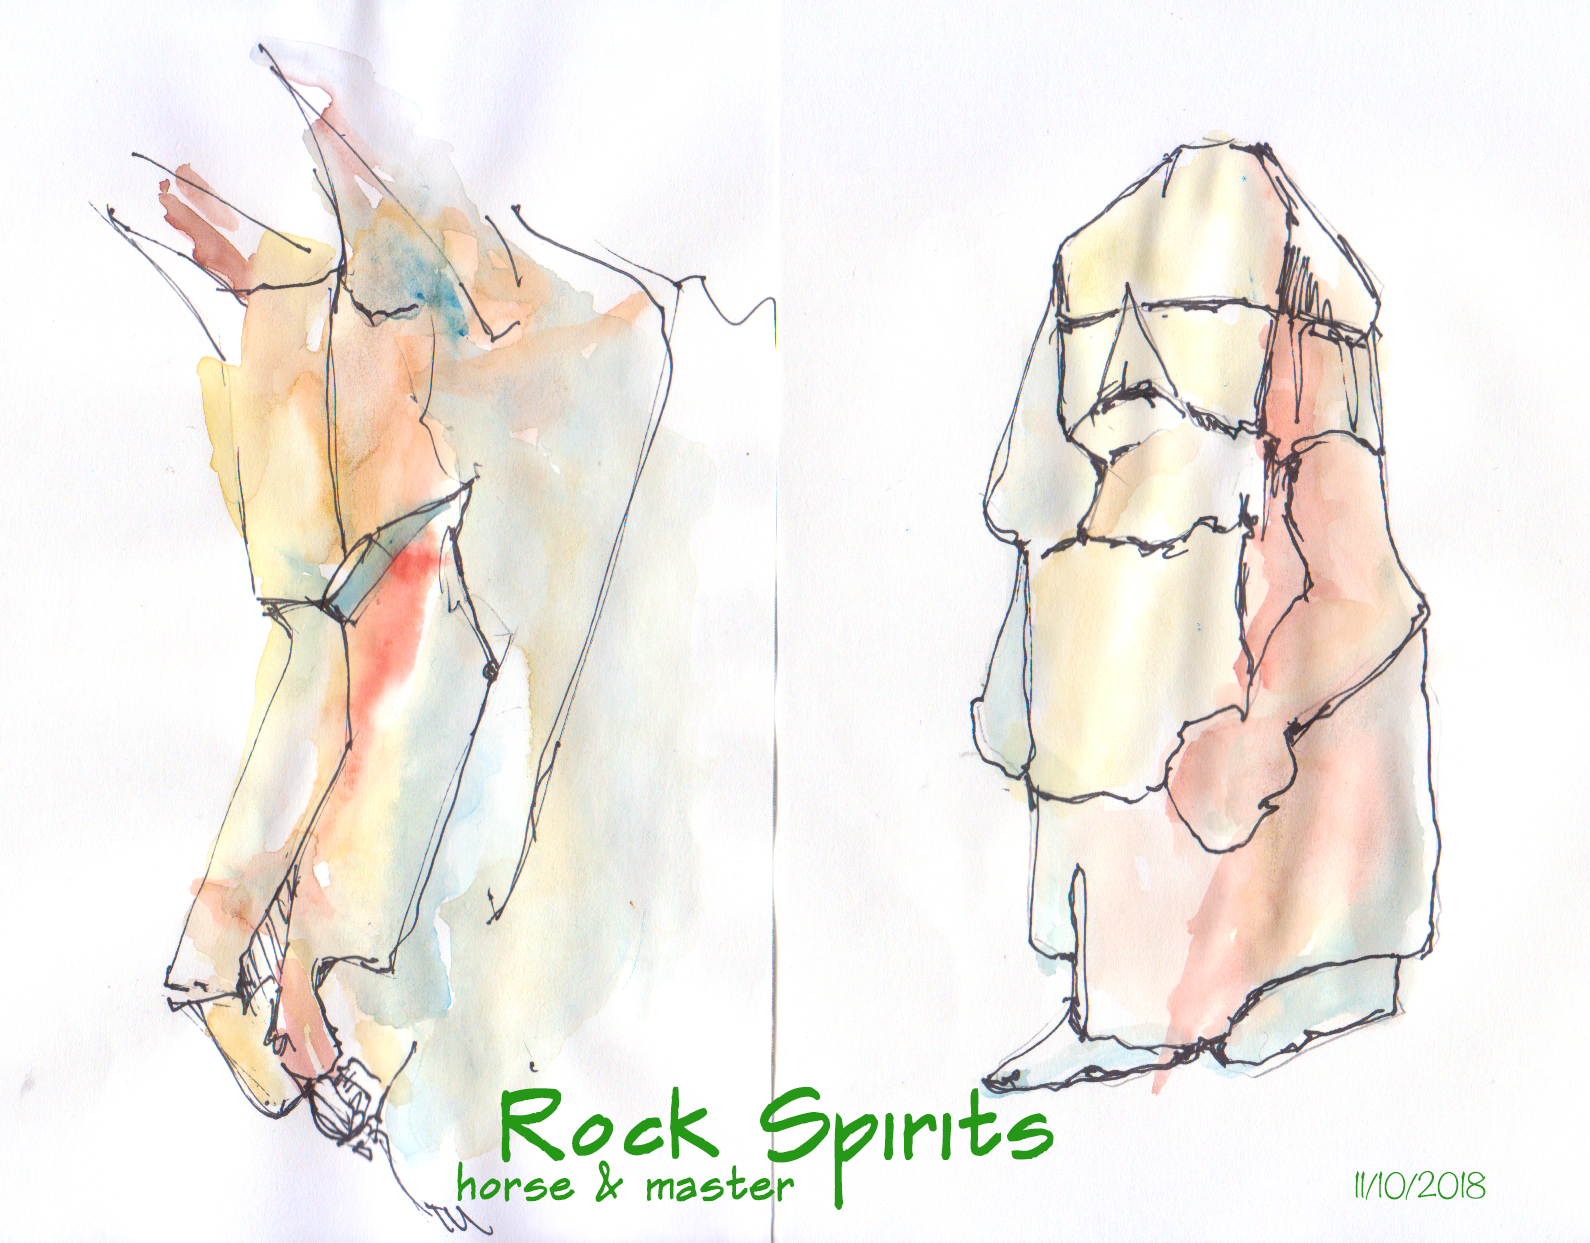 painting of rock spirits by Karen Little 2018